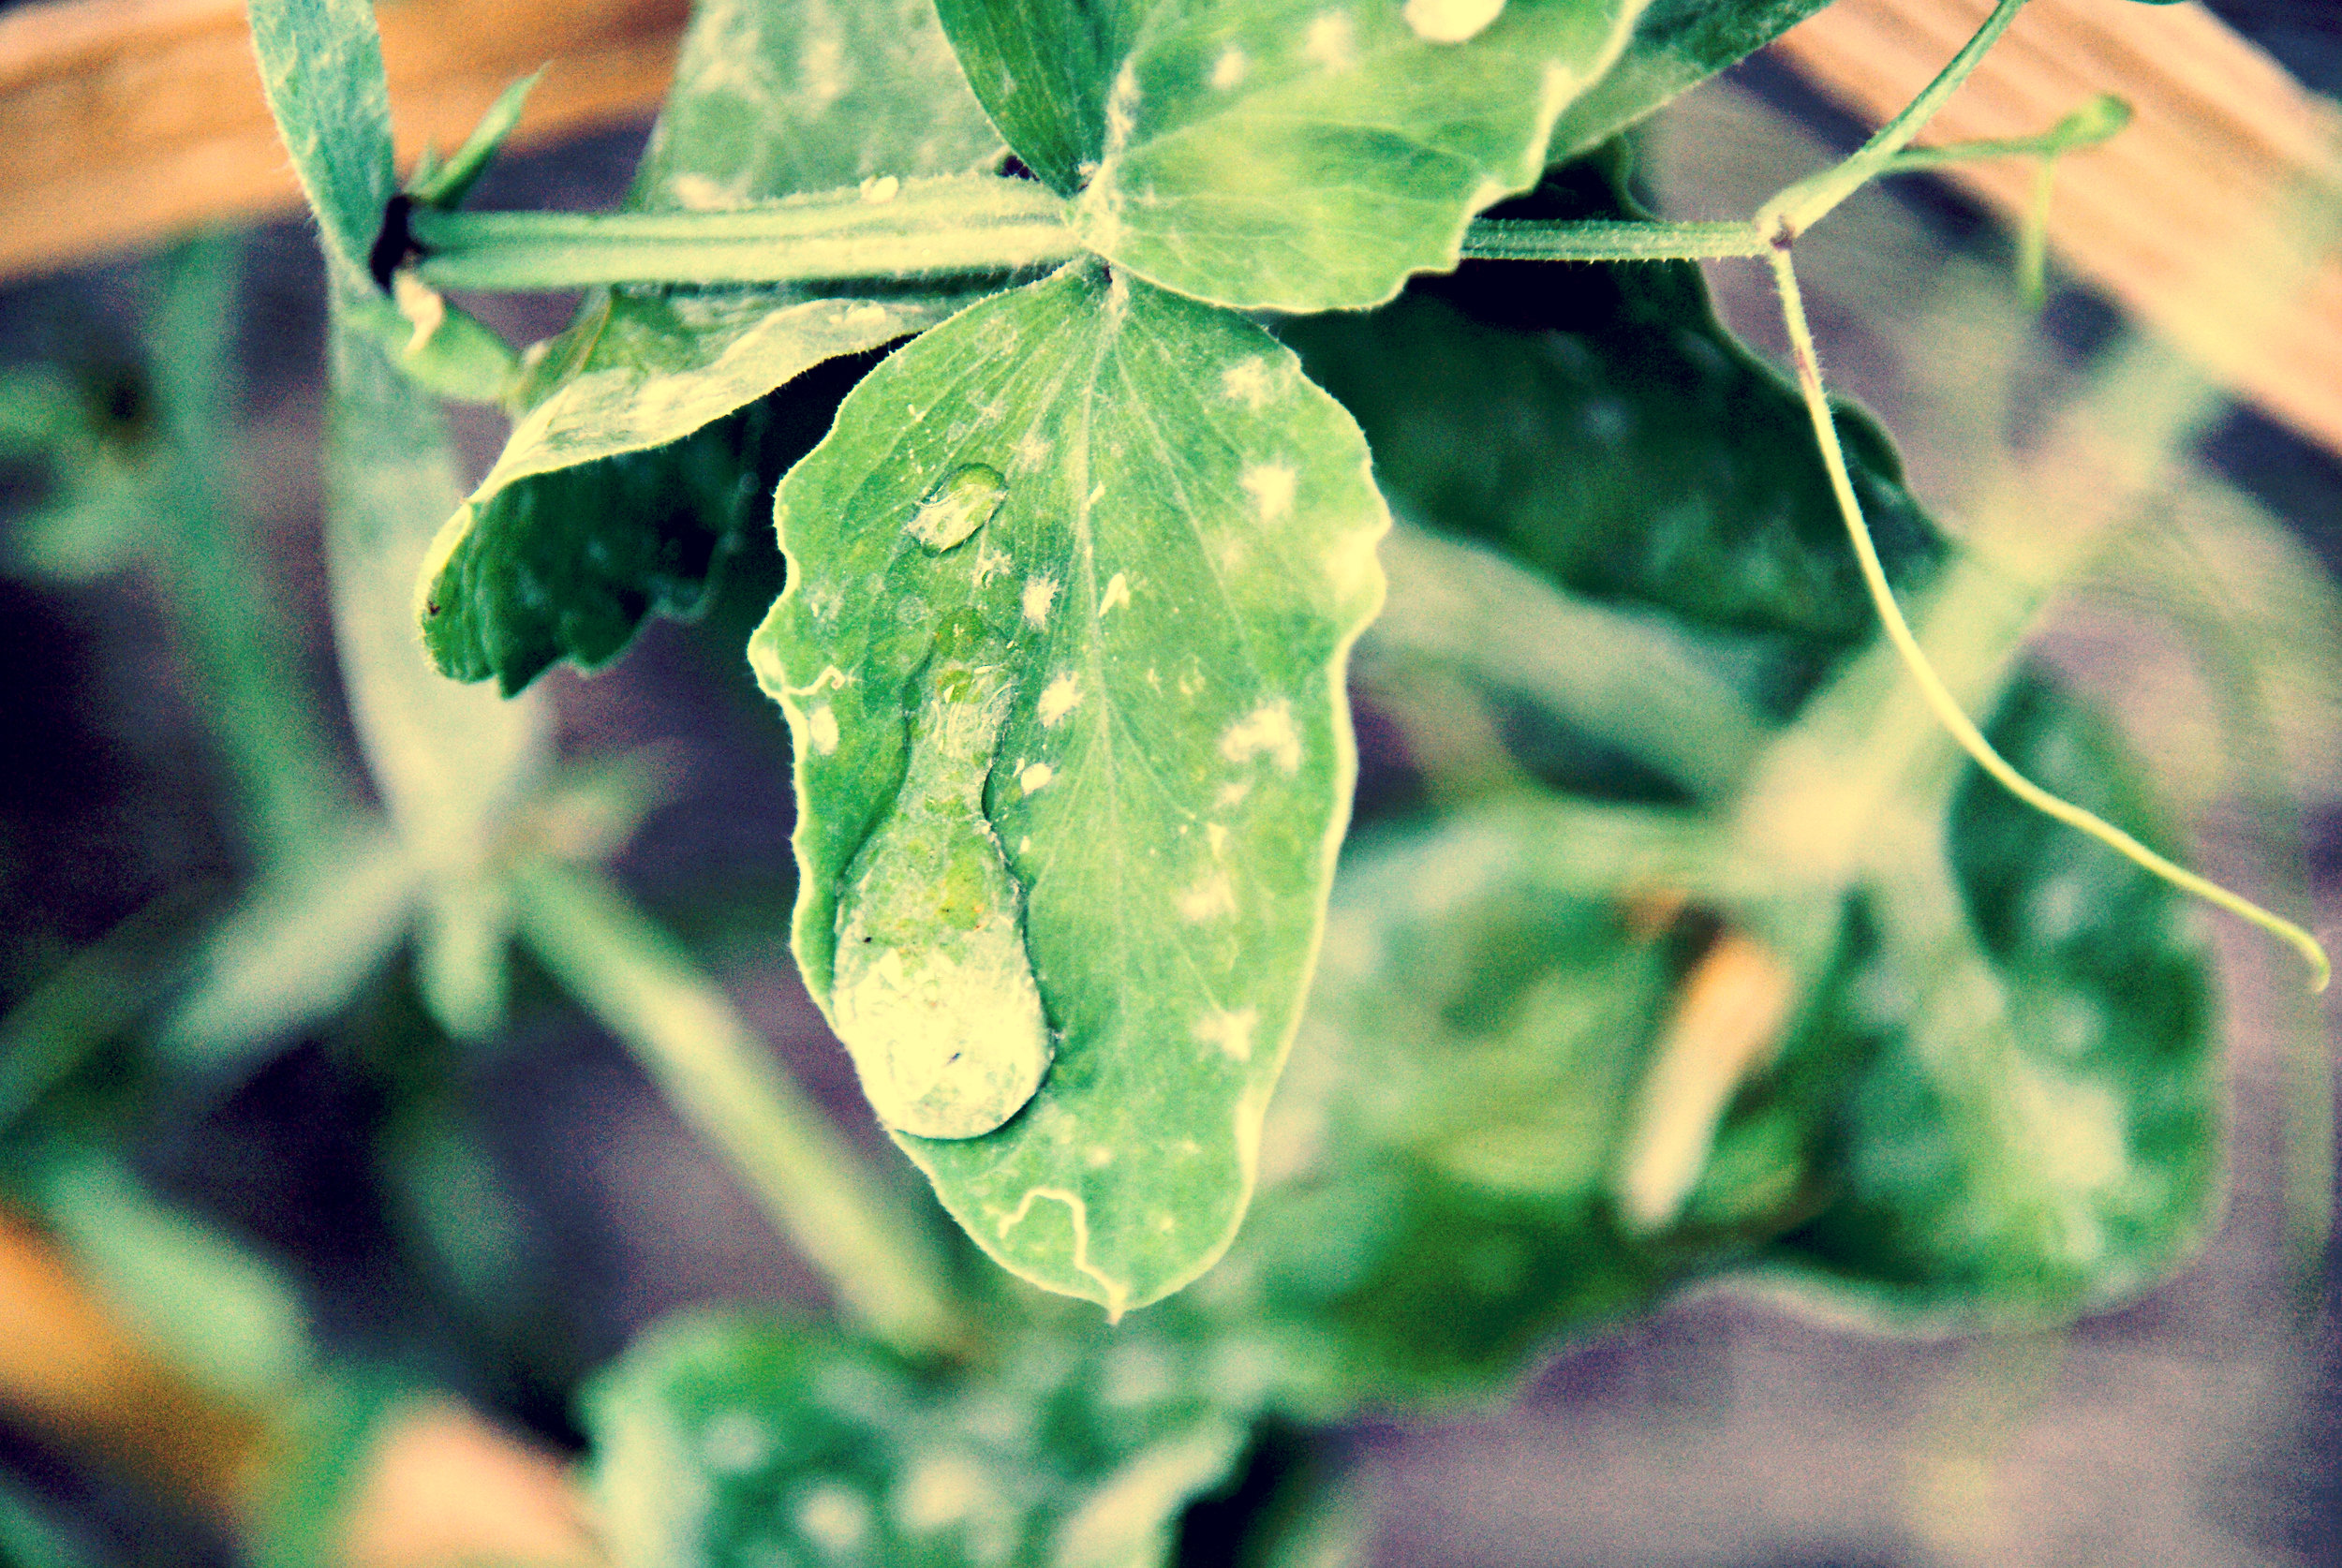 garden leaf with water drop.jpg